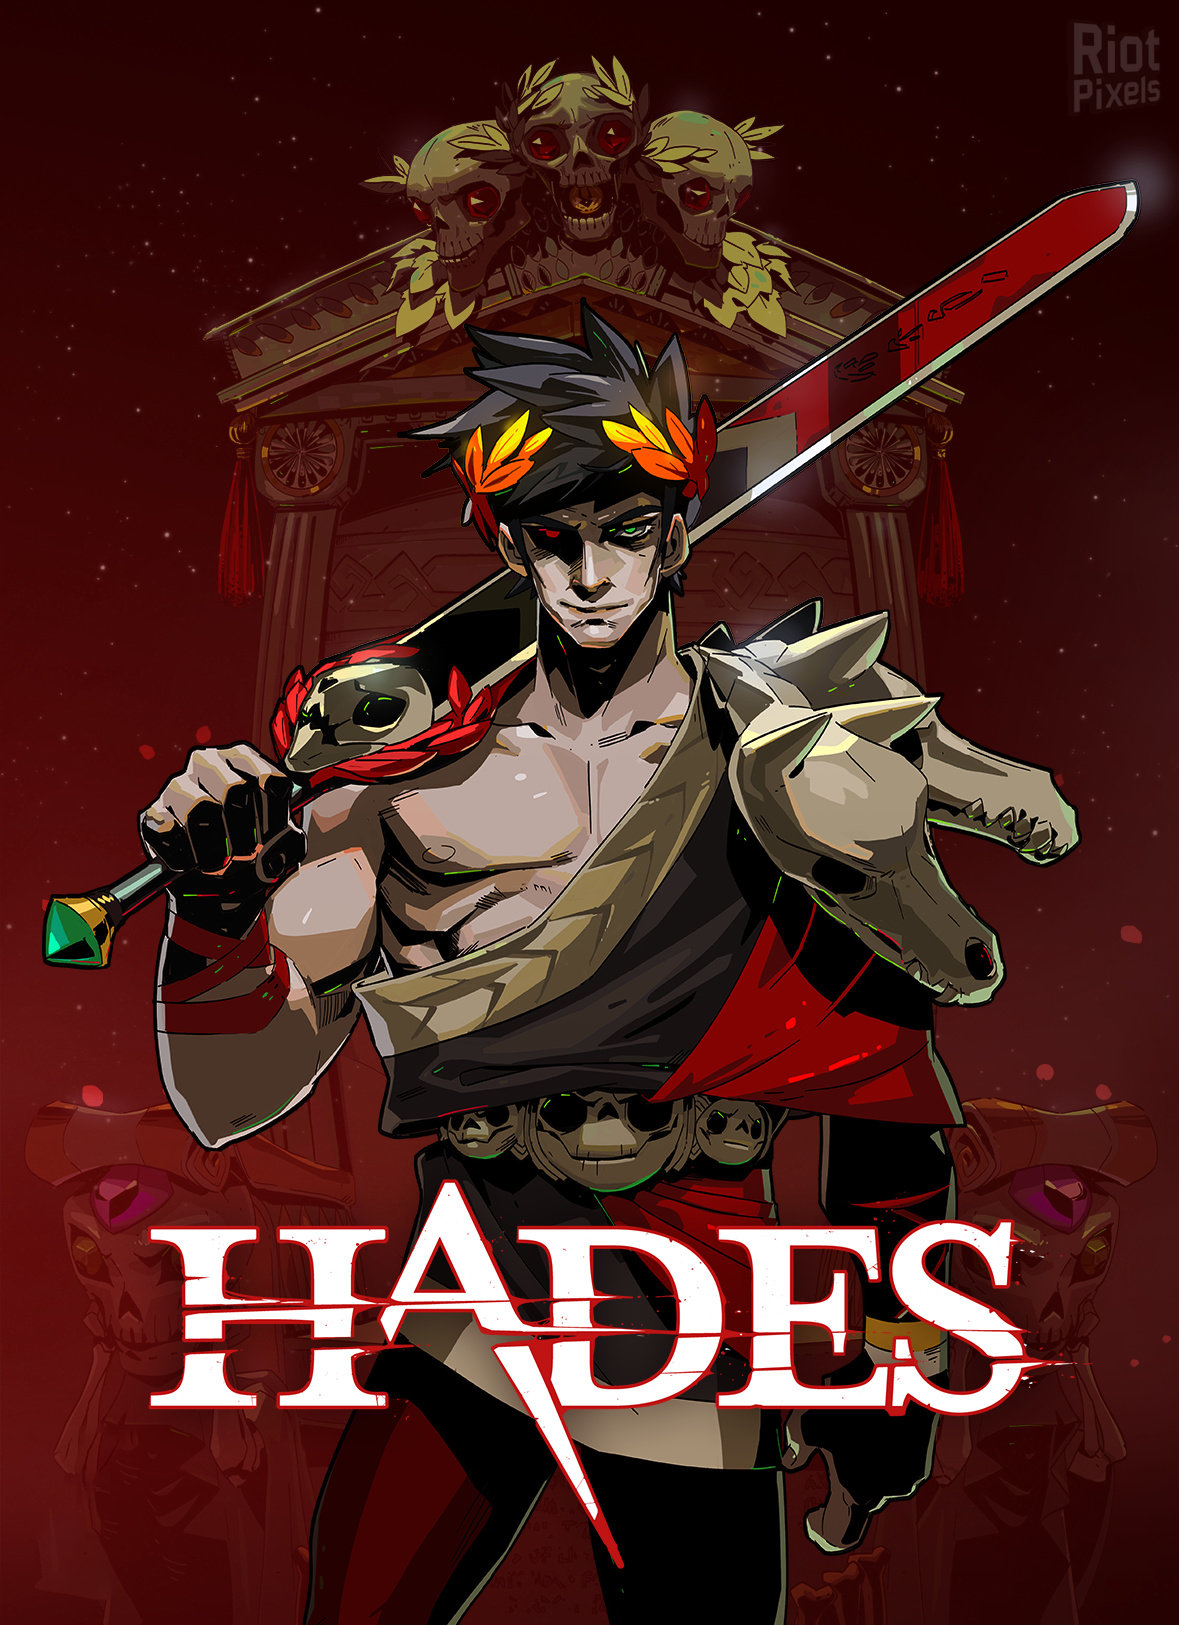 Poster for Hades